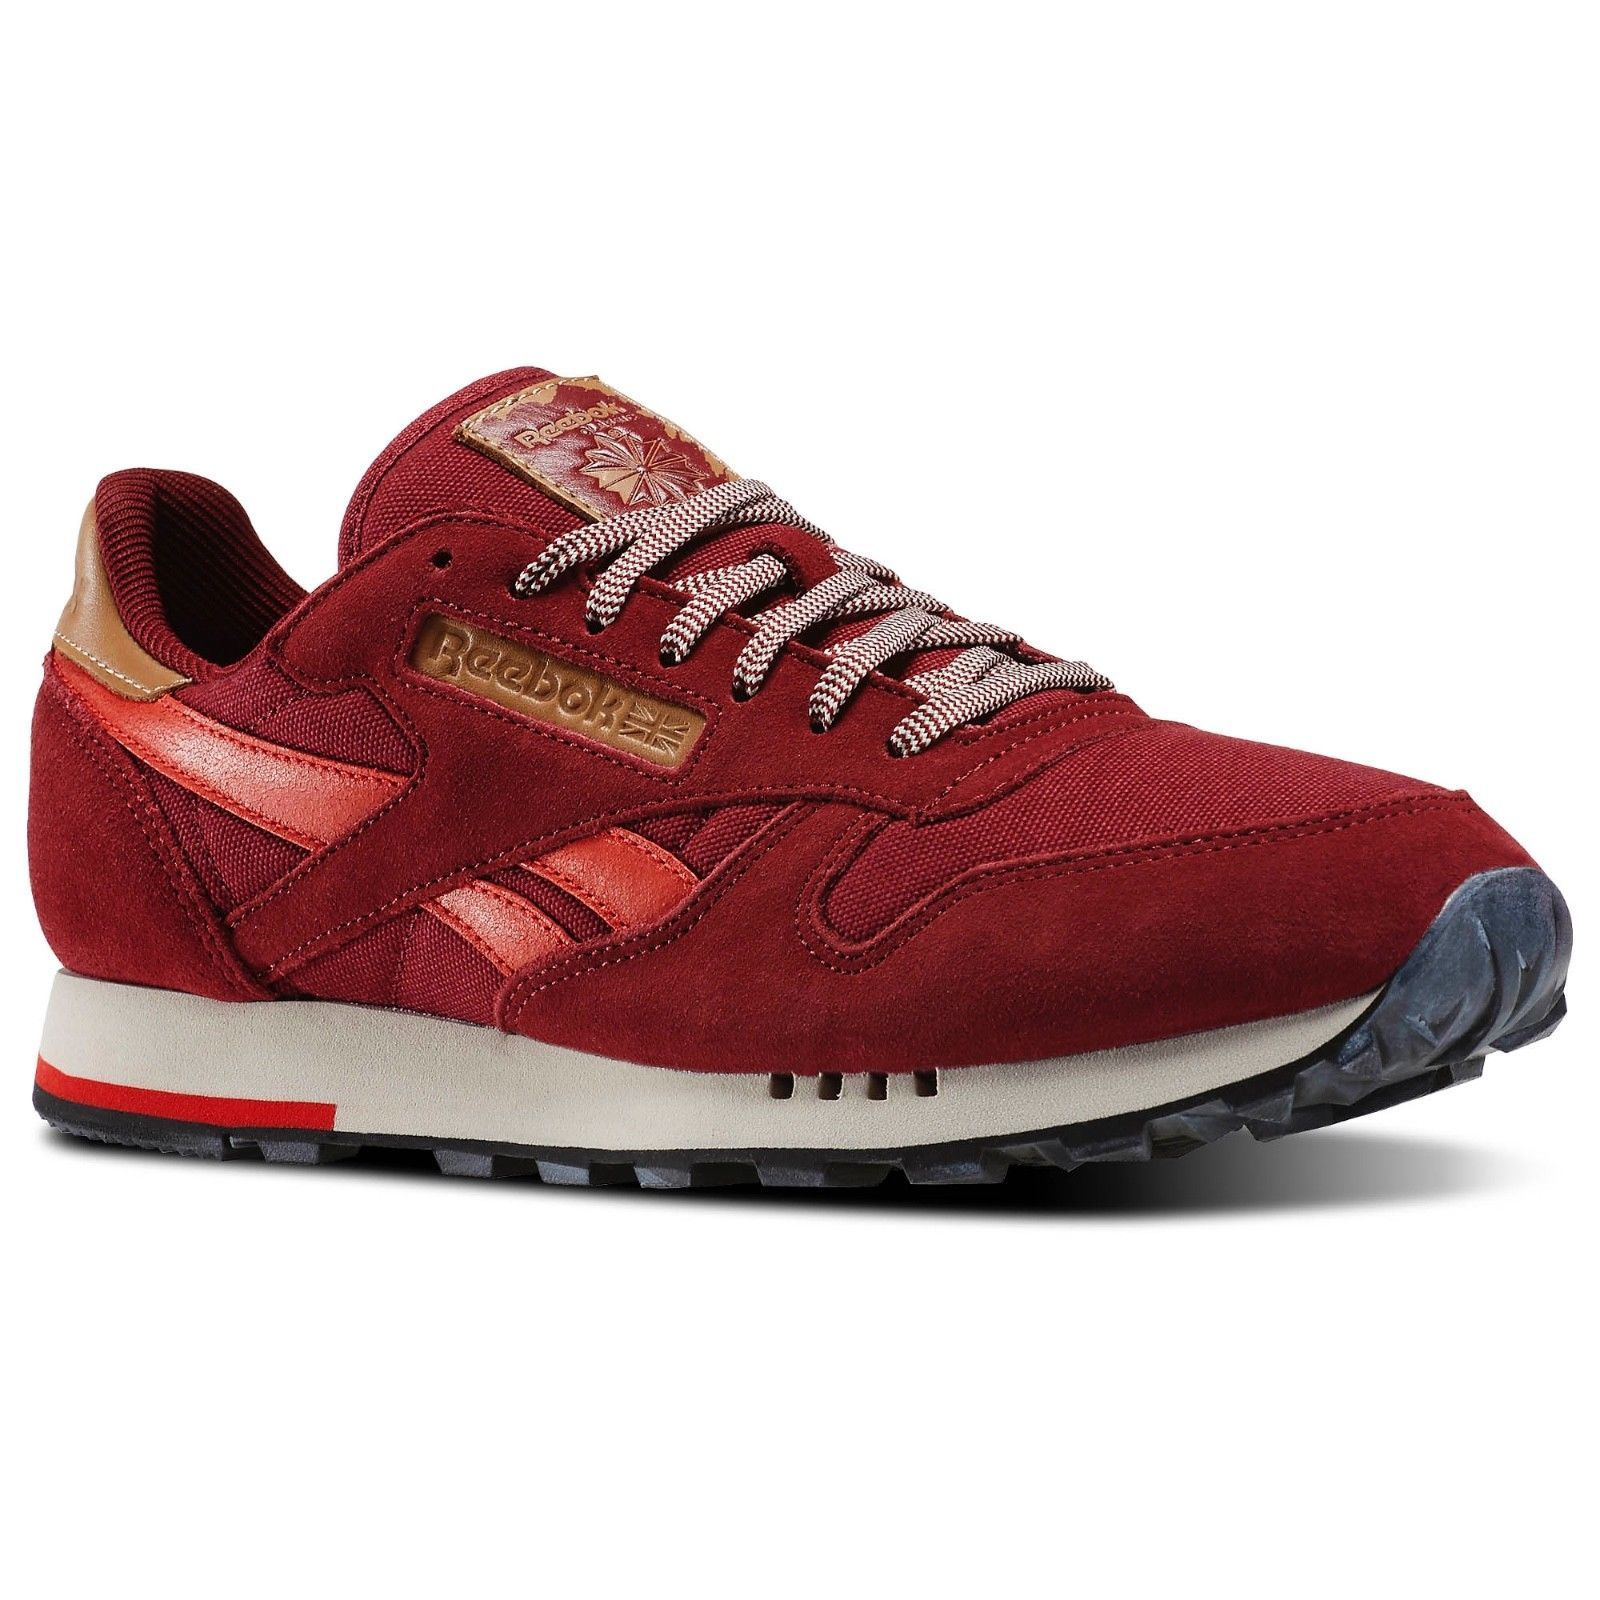 54c0883114a102 S l1600. S l1600. Previous. Reebok Men s Classic Leather Utility Trainers  Running Shoes - V72845 · Reebok ...